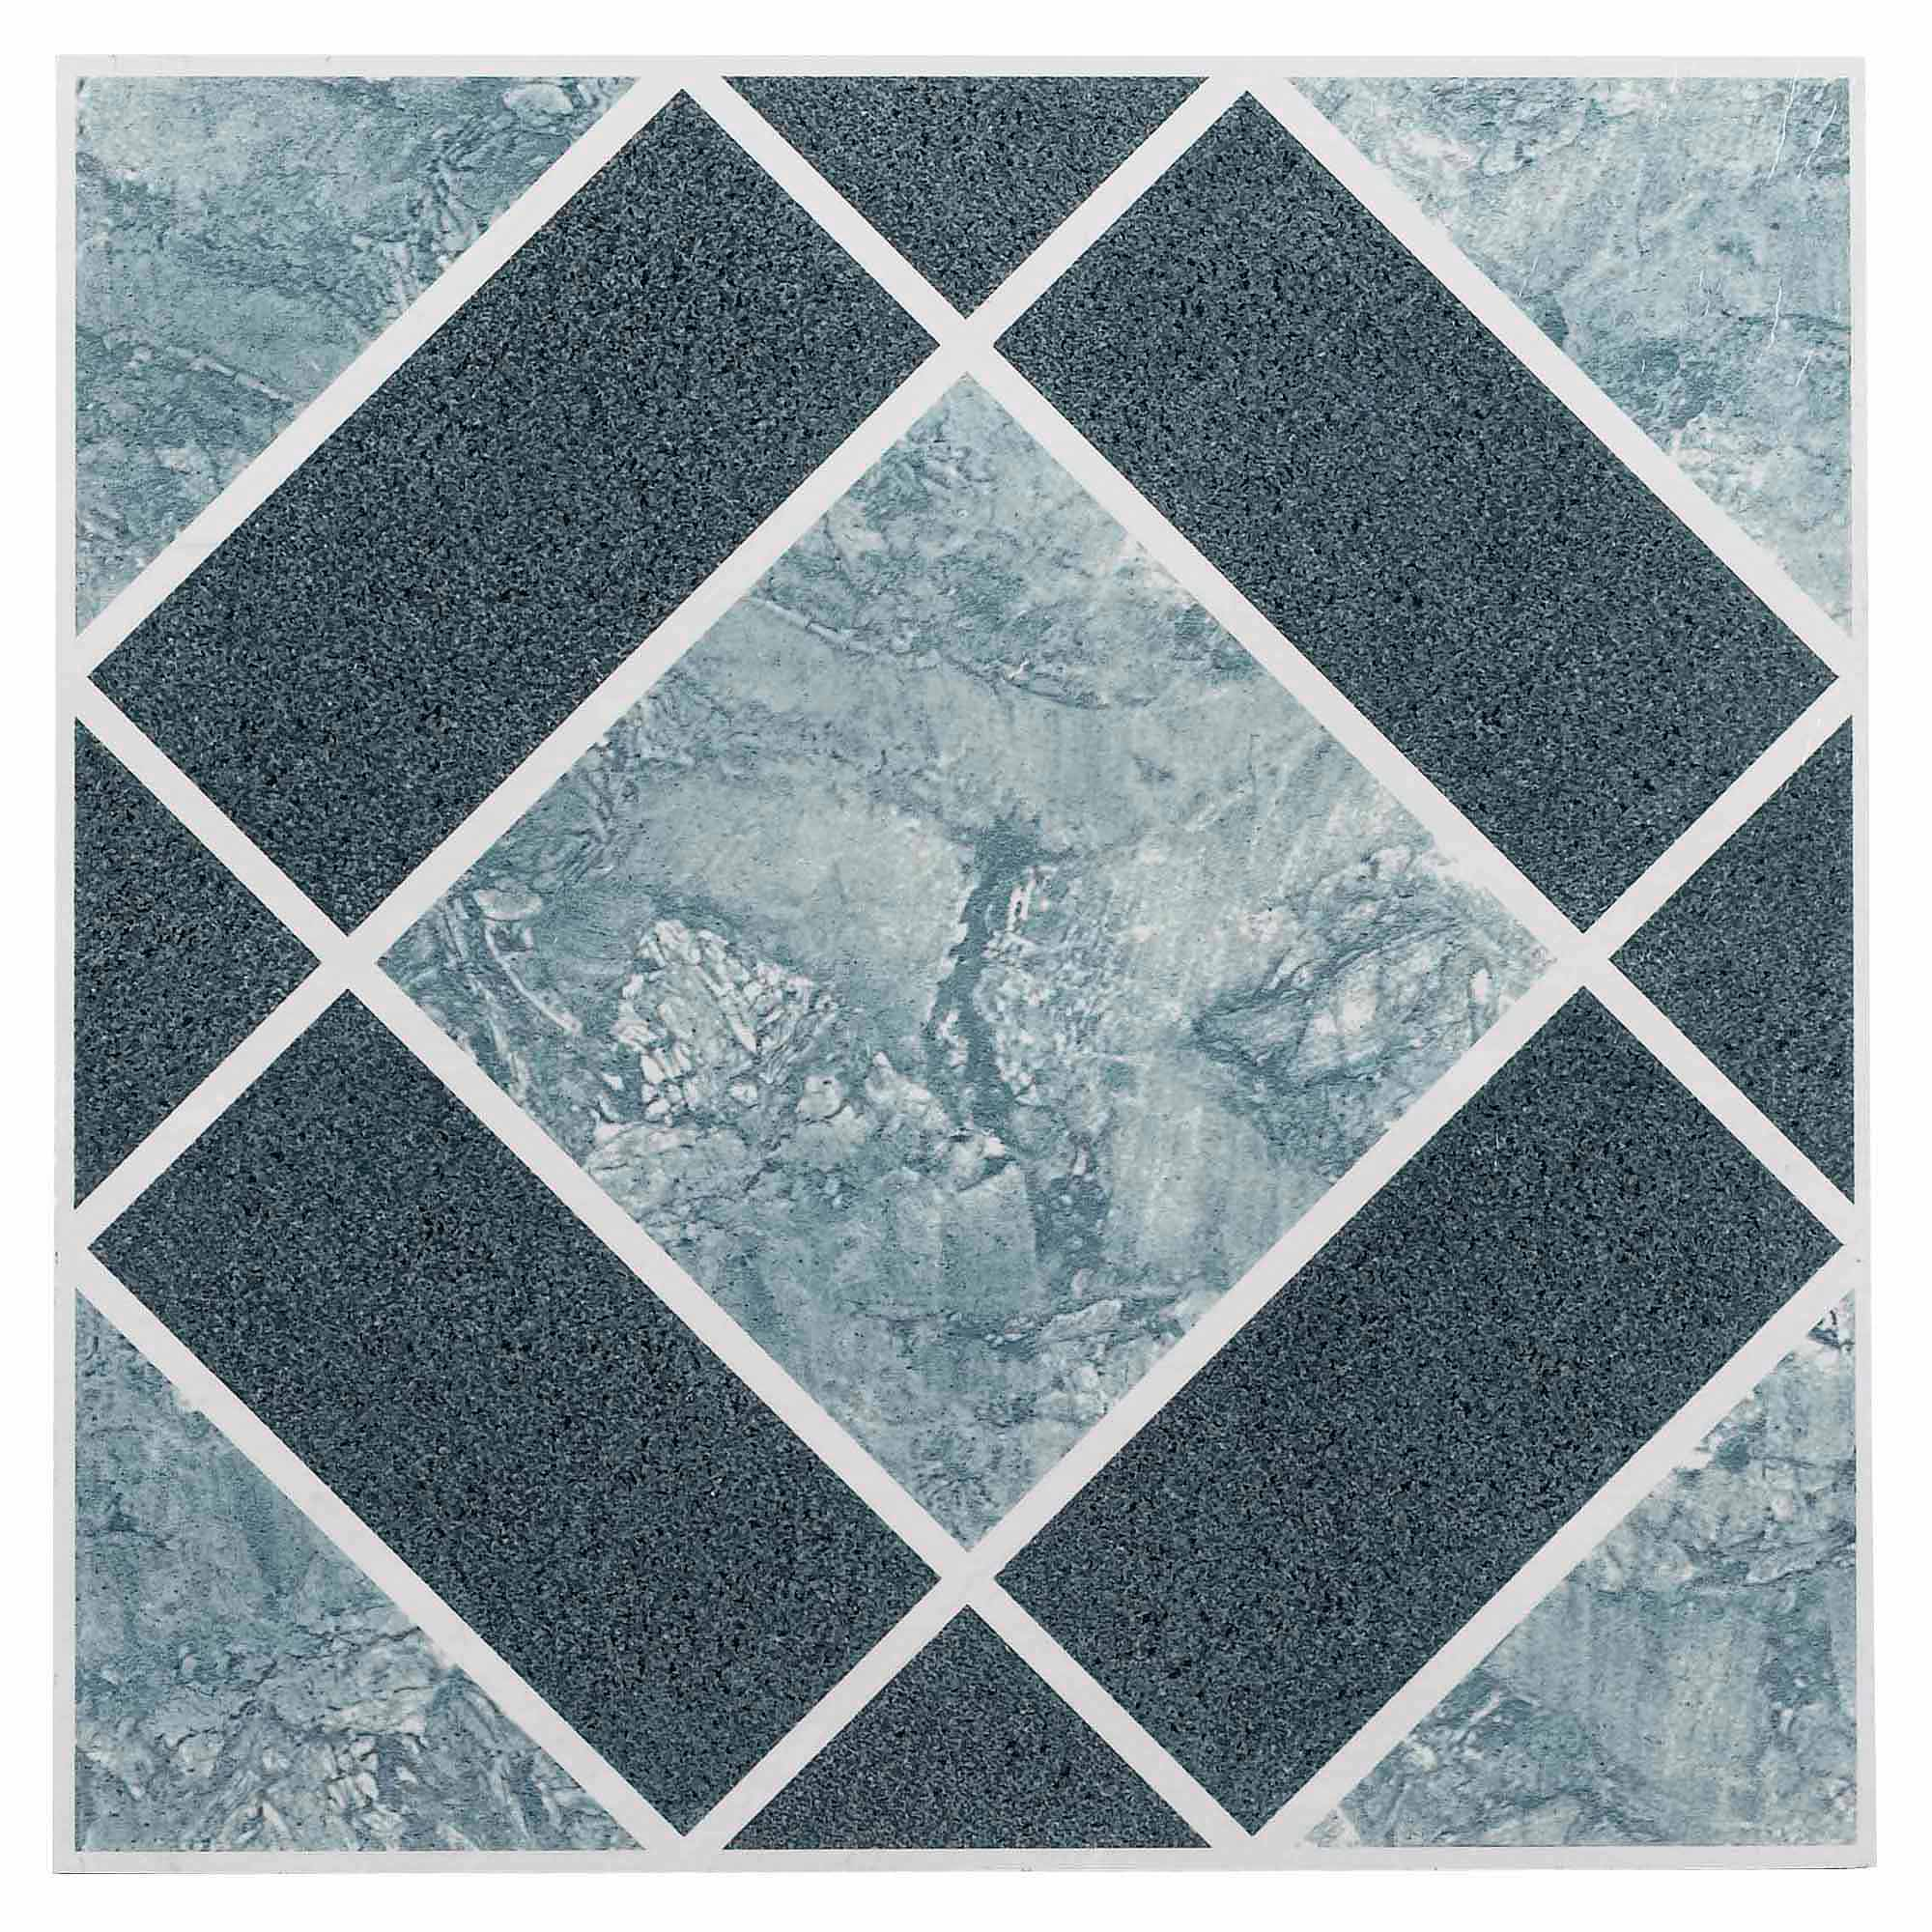 NEXUS Light & Dark Blue Diamond Pattern 12x12 Self Adhesive Vinyl Floor Tile - 20 Tiles/20 Sq.Ft.